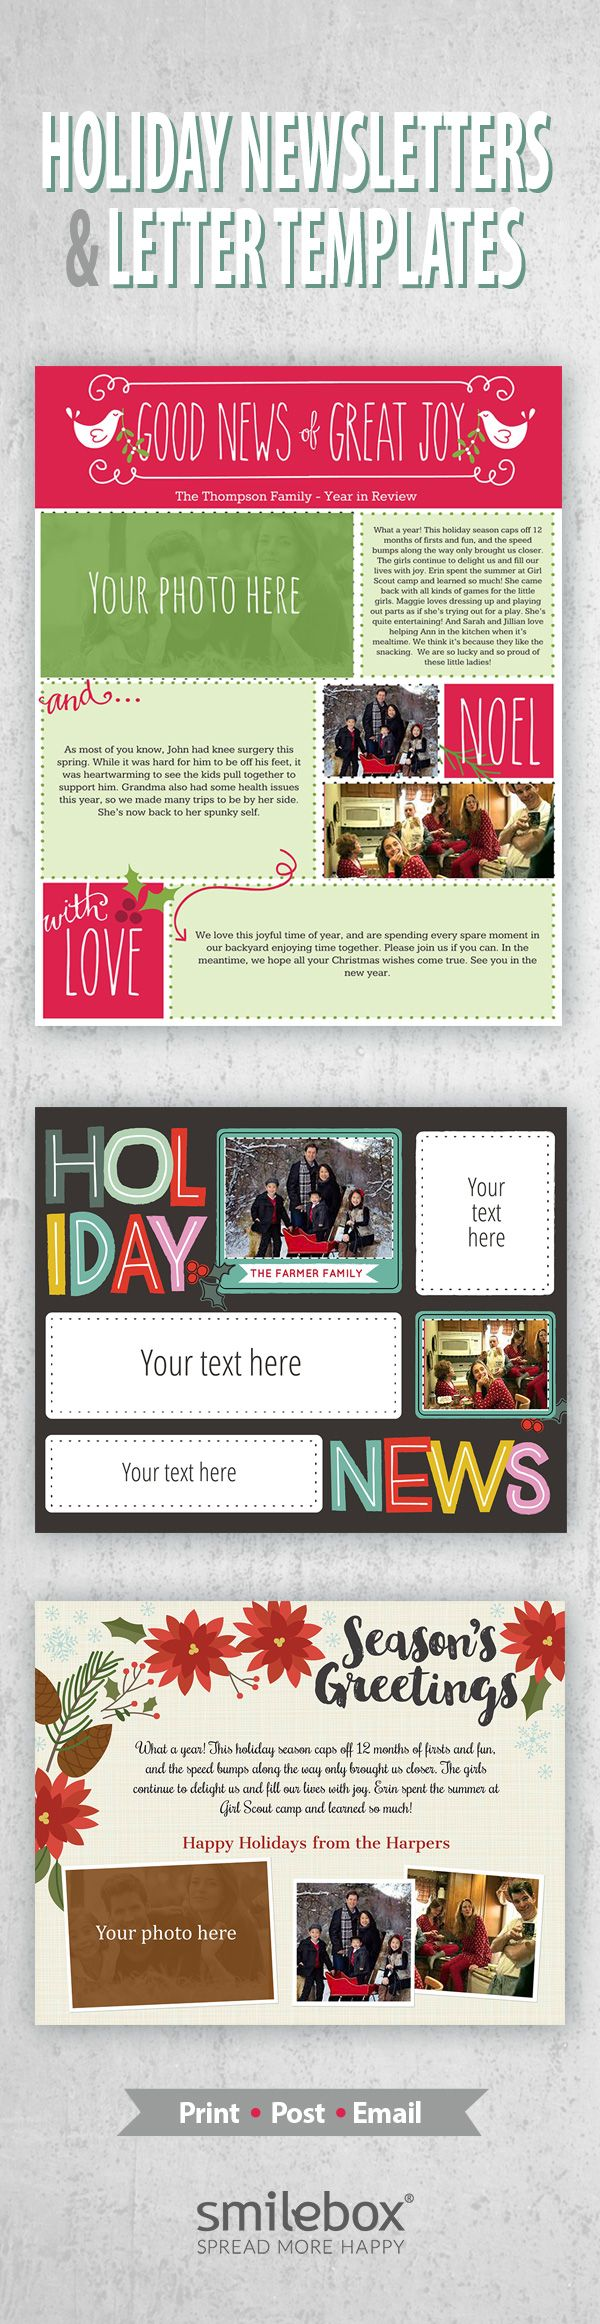 Create beautiful Christmas newsletter and letters to update and connect with loved ones. Smilebox makes it easy to share the news of the year with favorite photos, custom message and animated Christmas newsletter template designs